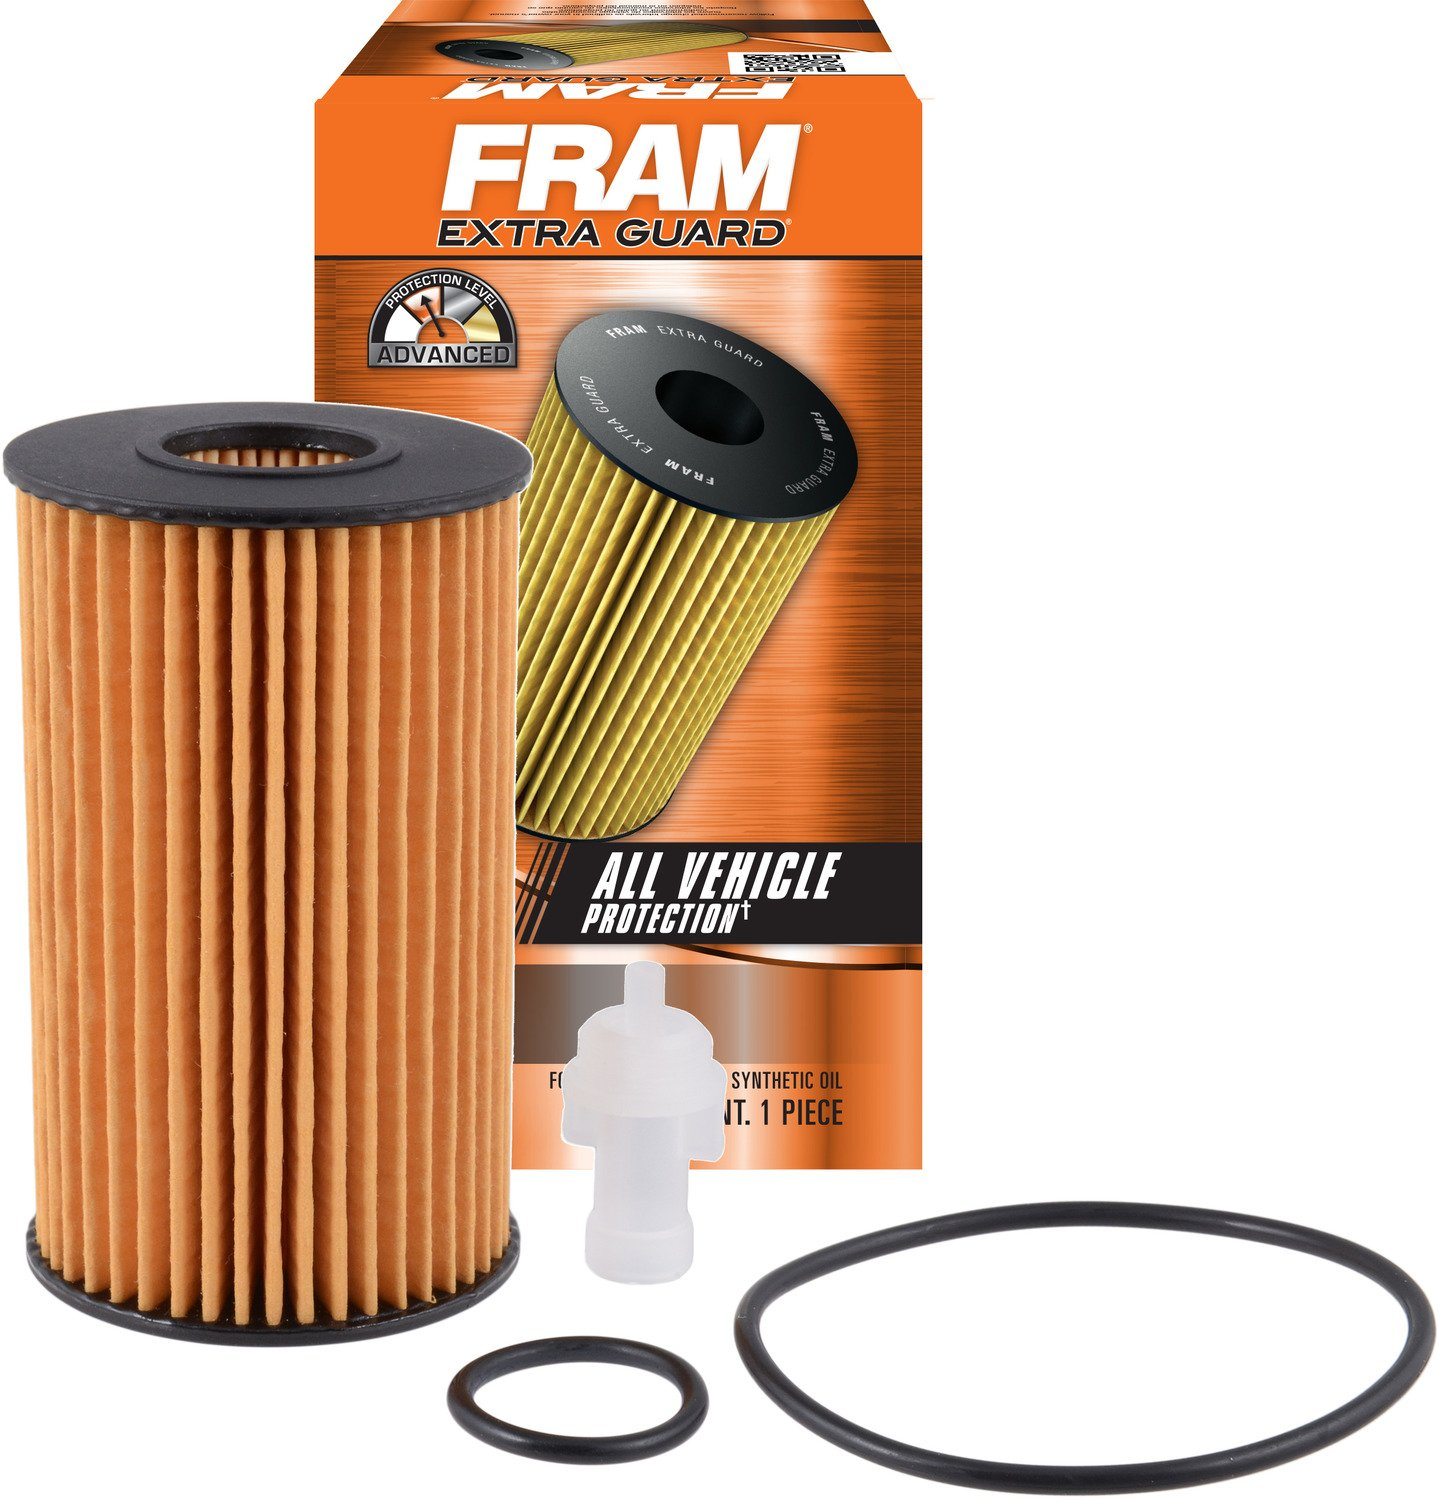 FRAM CH10295 Extra Guard Oil Filter Fram Filters